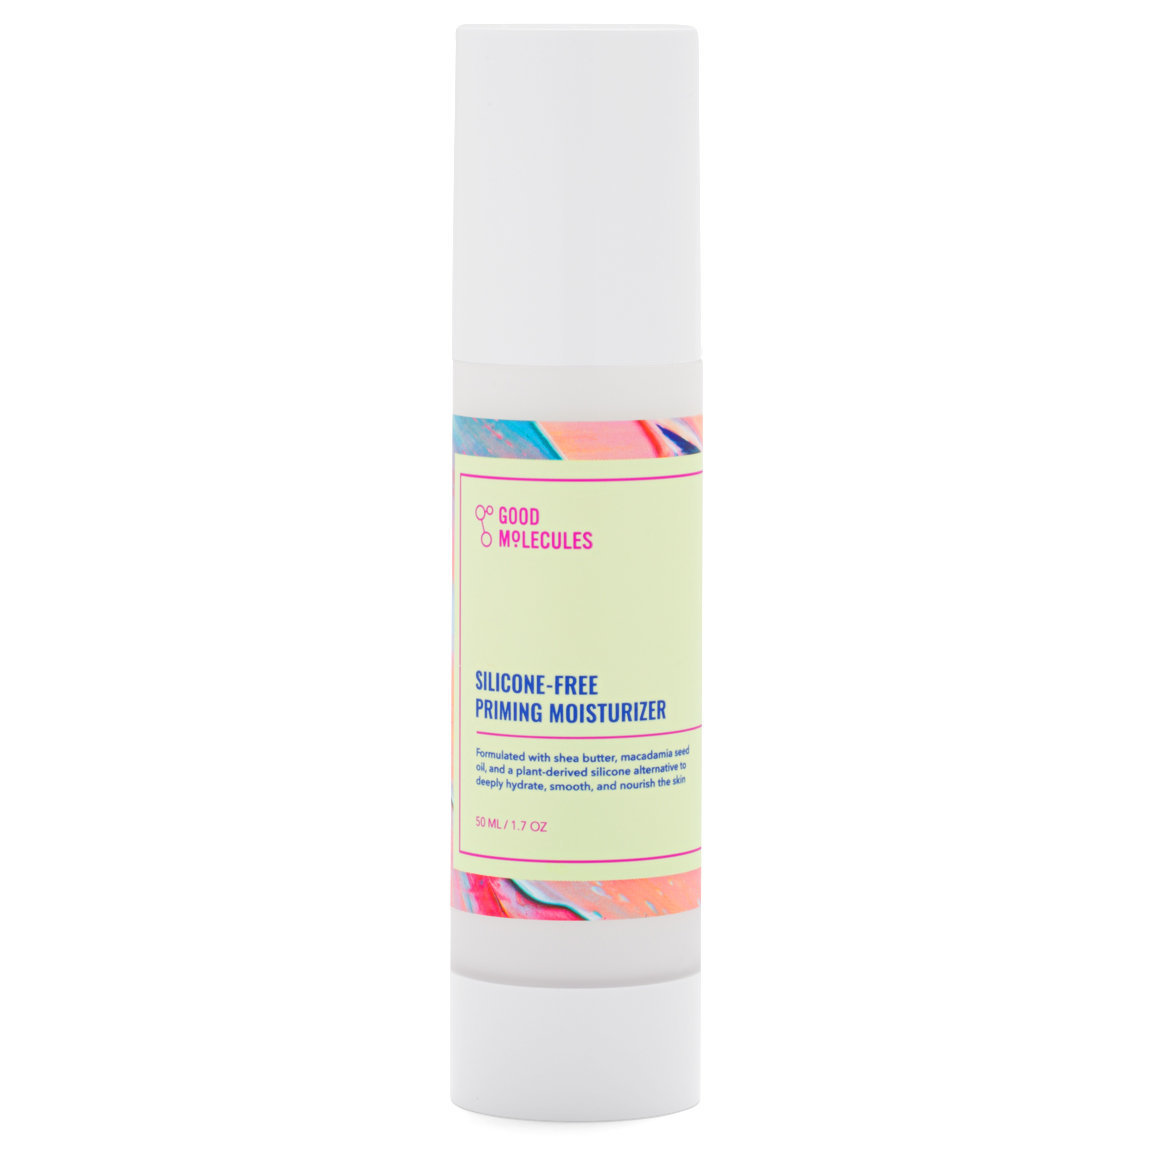 Good Molecules Silicone-Free Priming Moisturizer 50 ml alternative view 1 - product swatch.